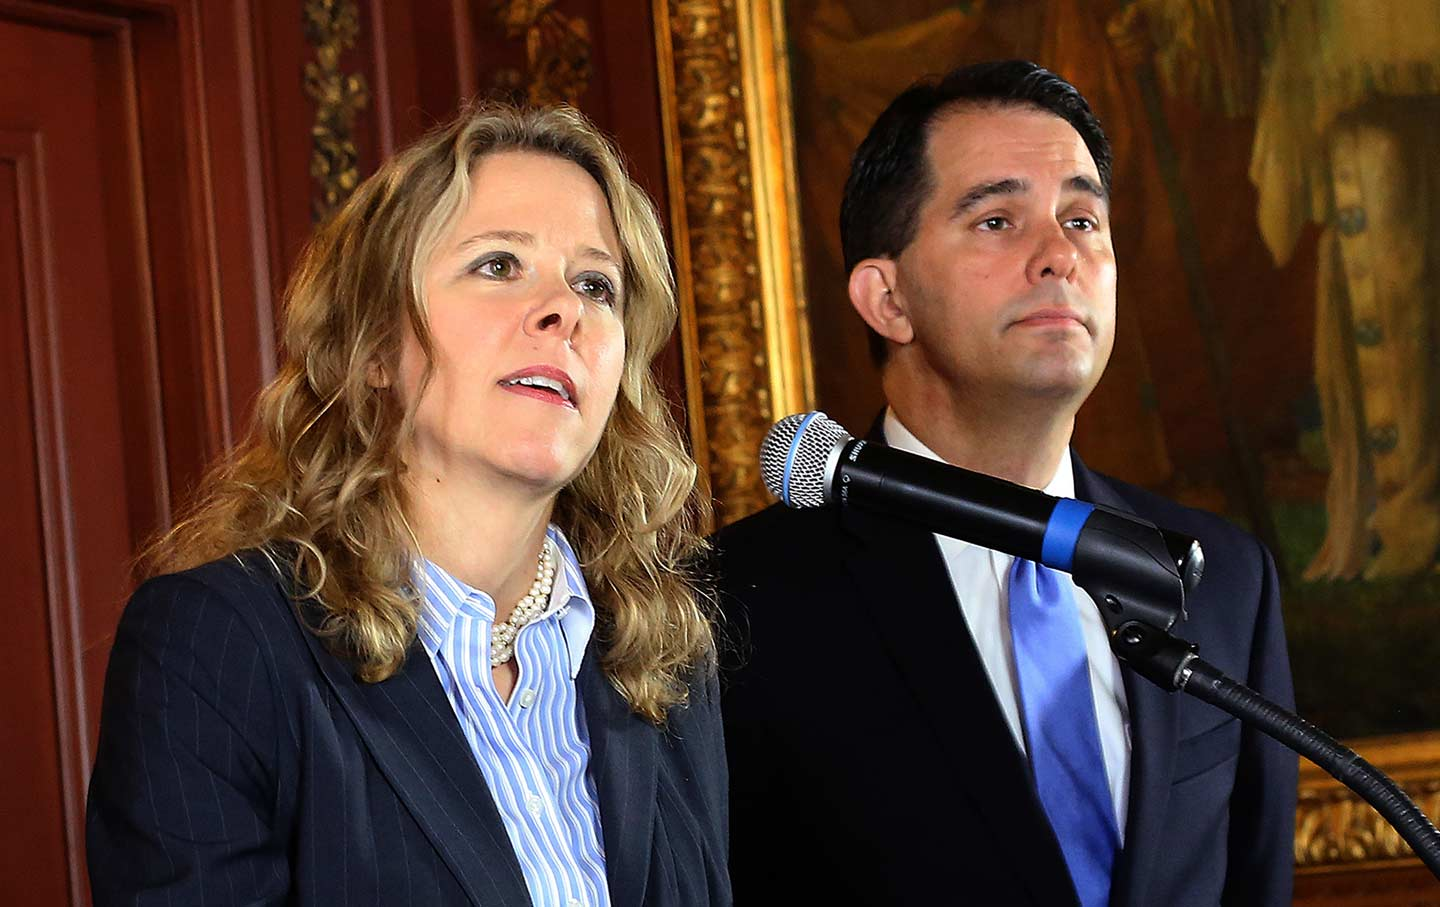 Scott Walker and Rebecca Bradley